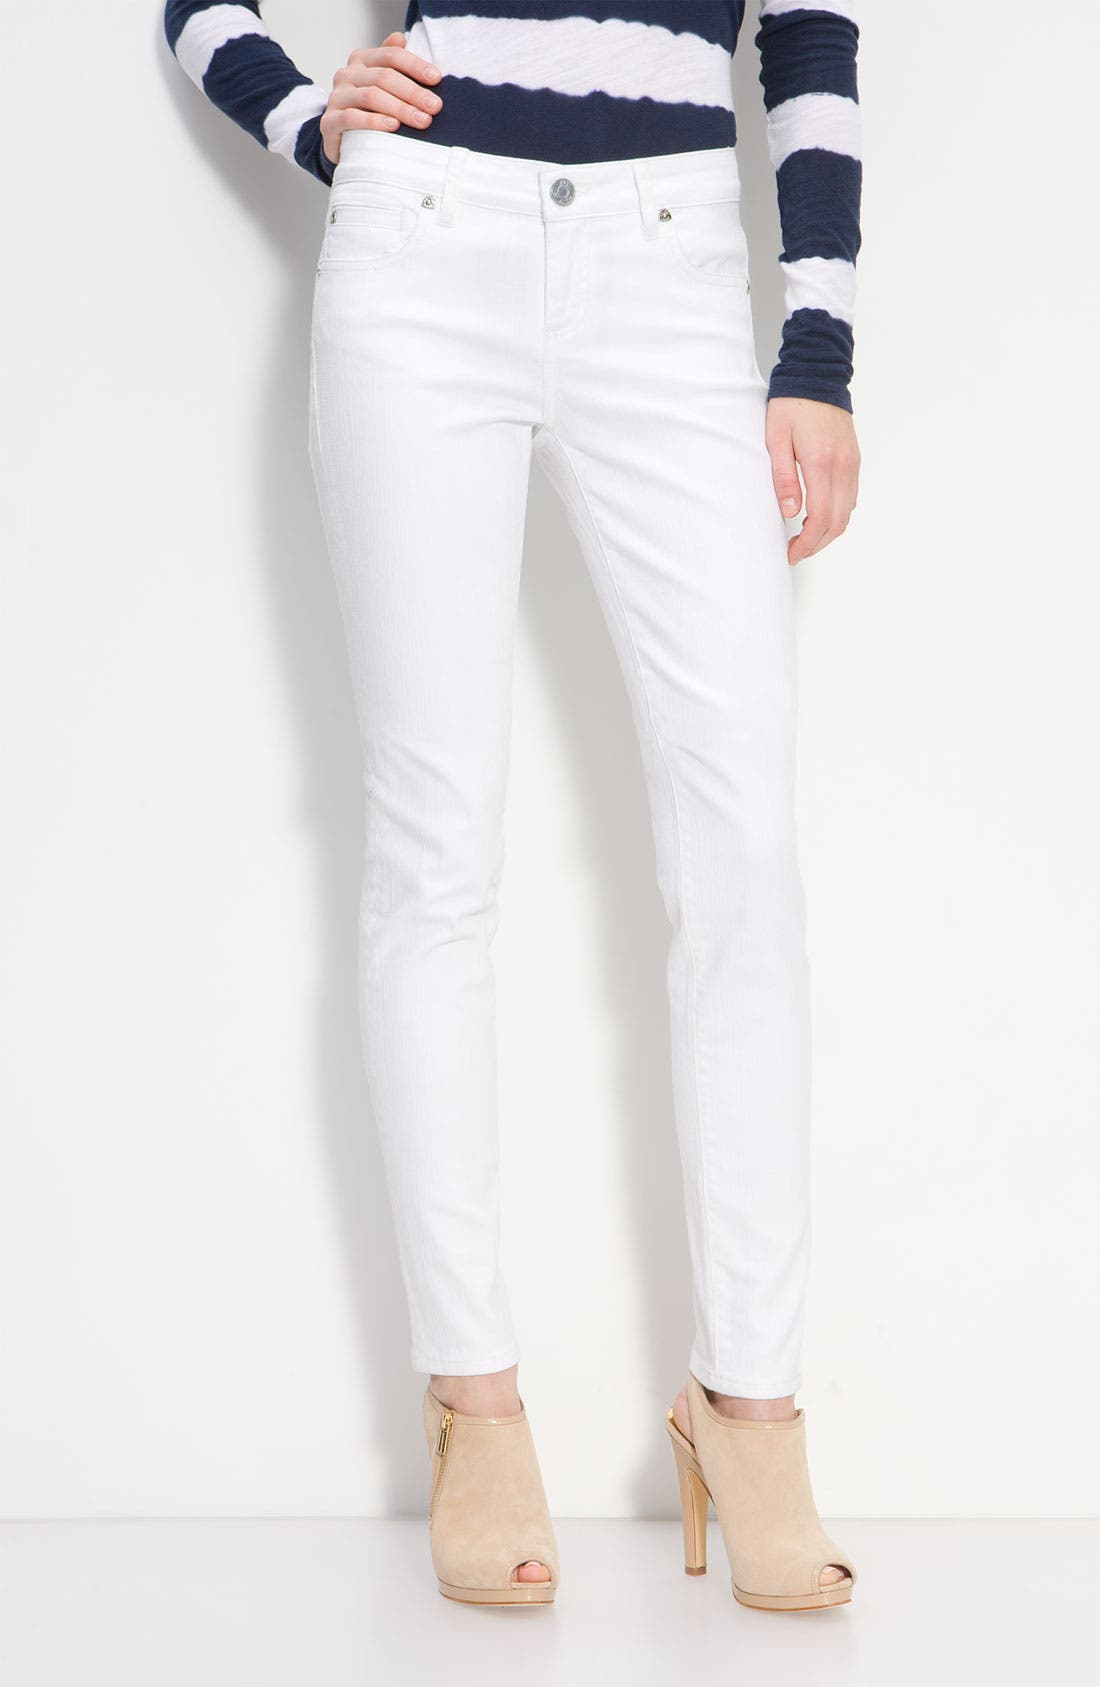 Alternate Image 1 Selected - KUT from the Kloth Skinny Jeans (White Wash)